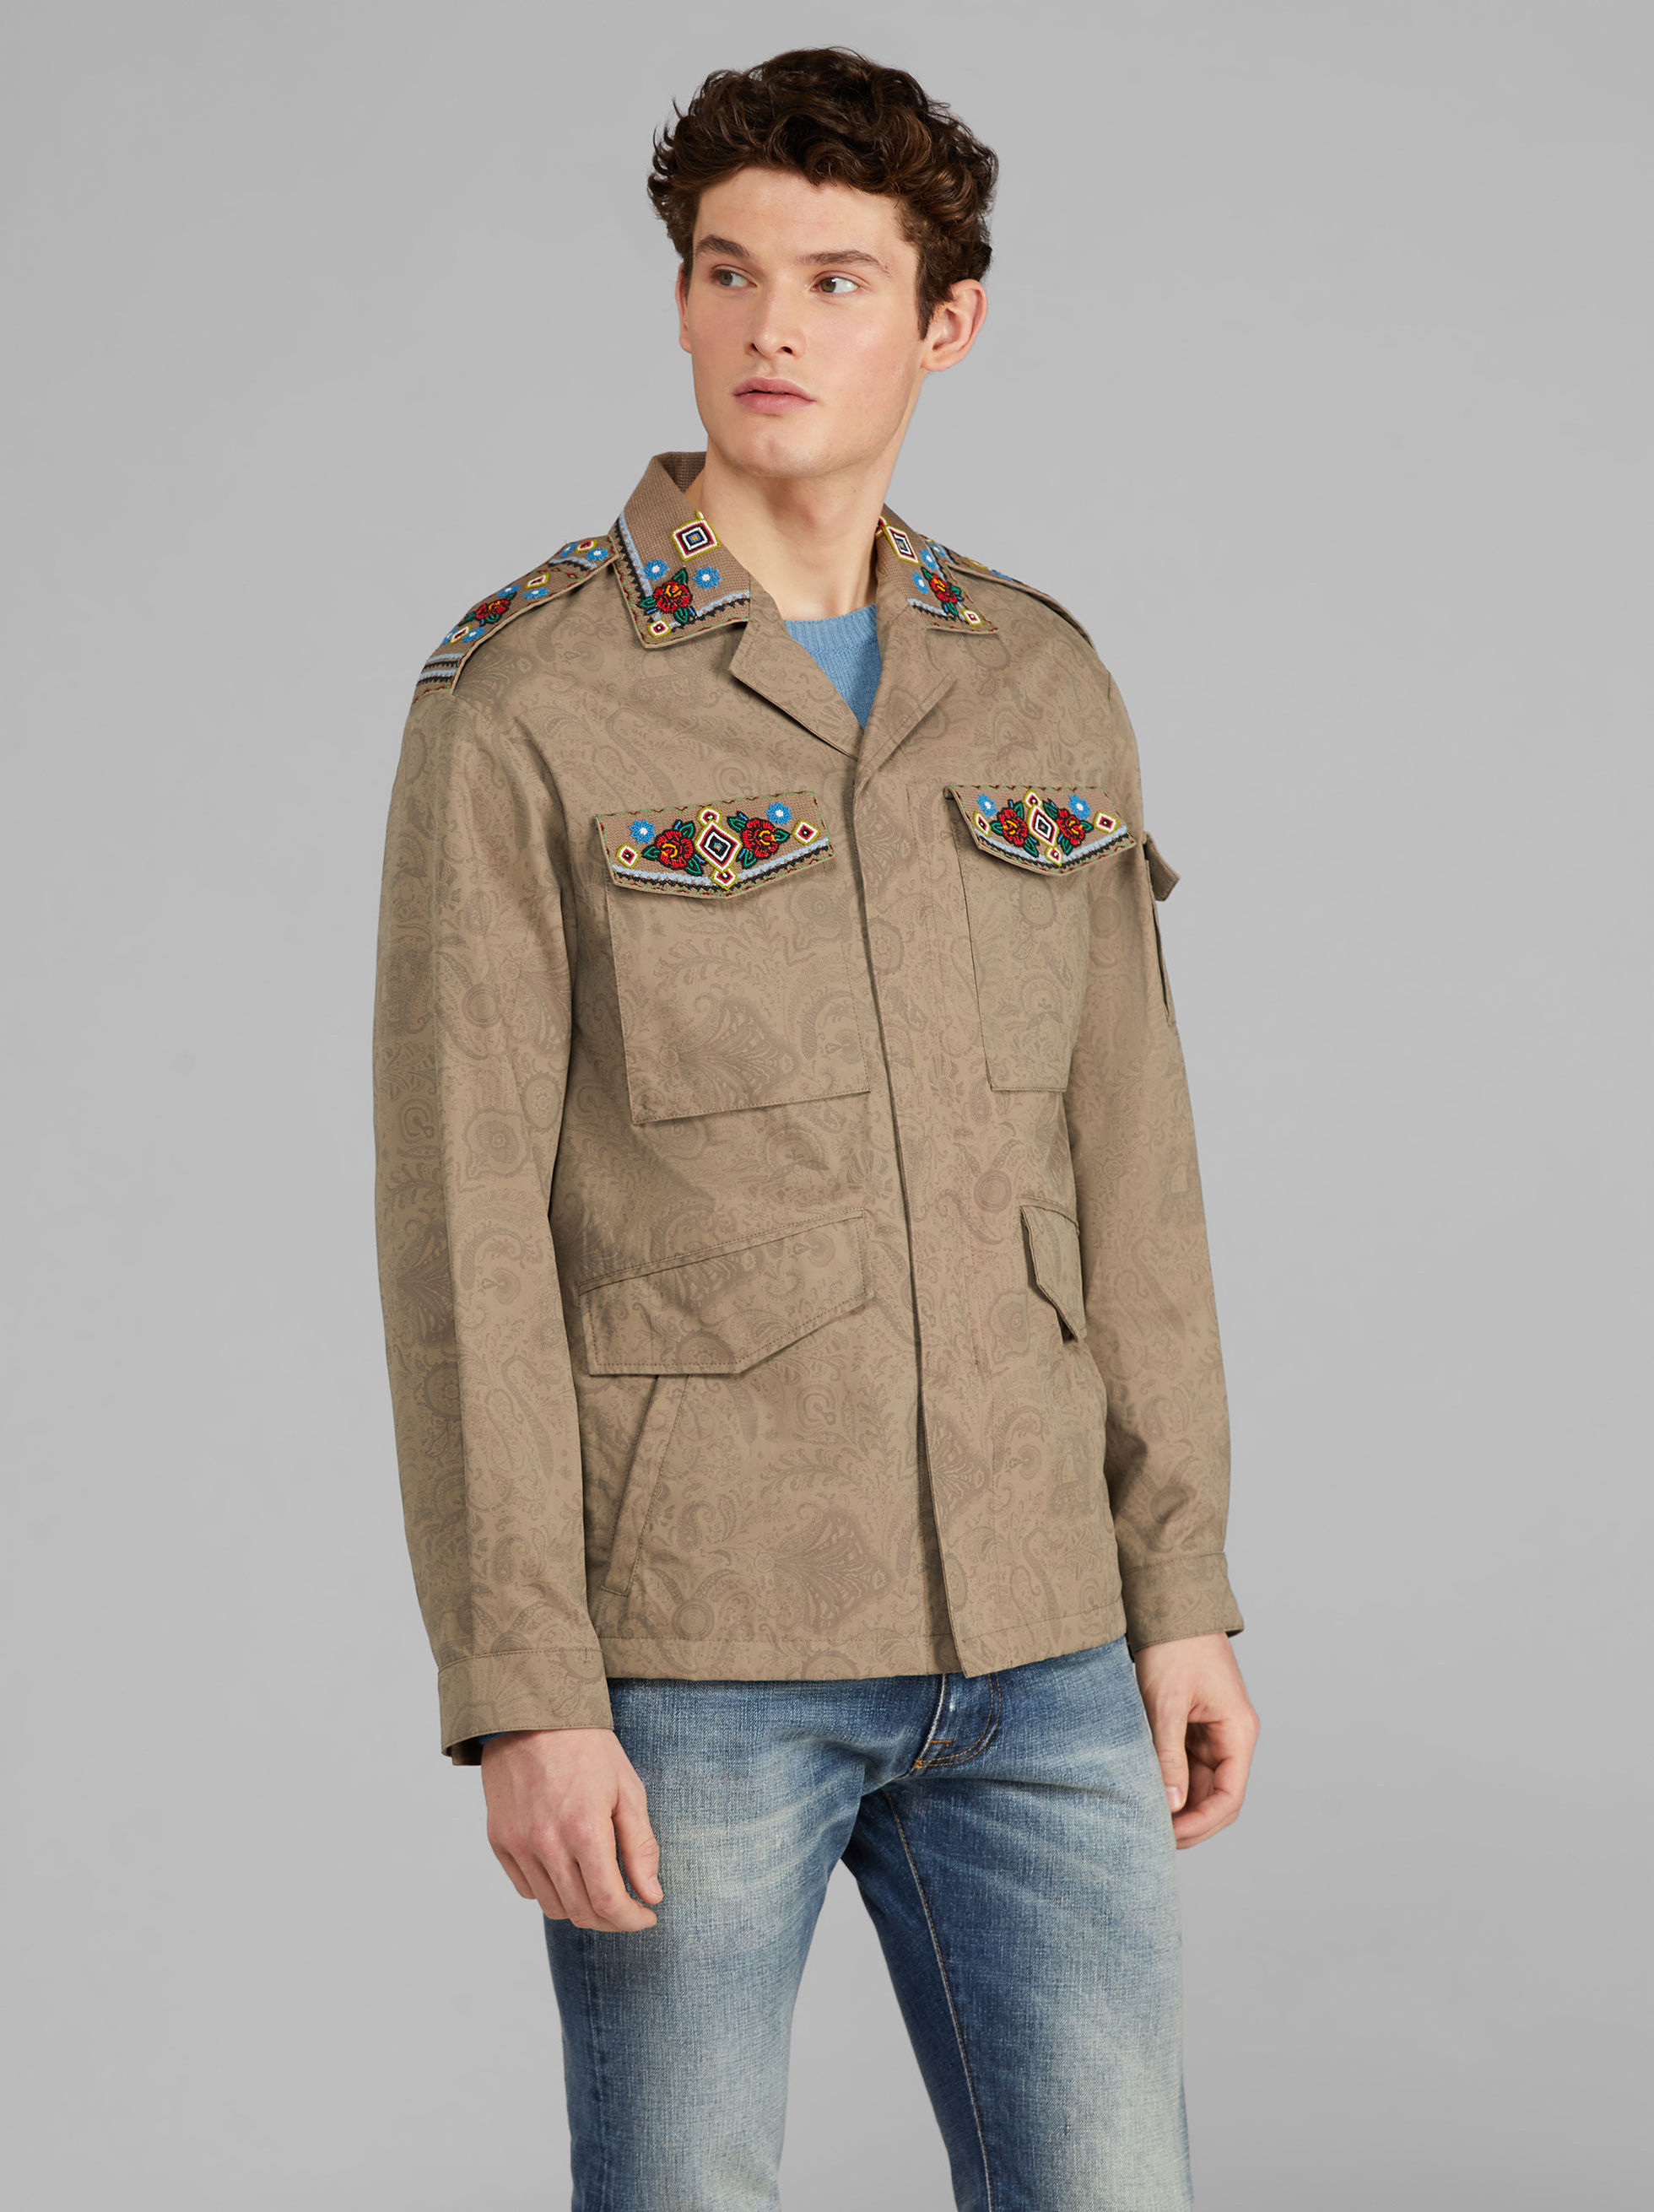 FIELD JACKET WITH CROSS-STITCH EMBROIDERY